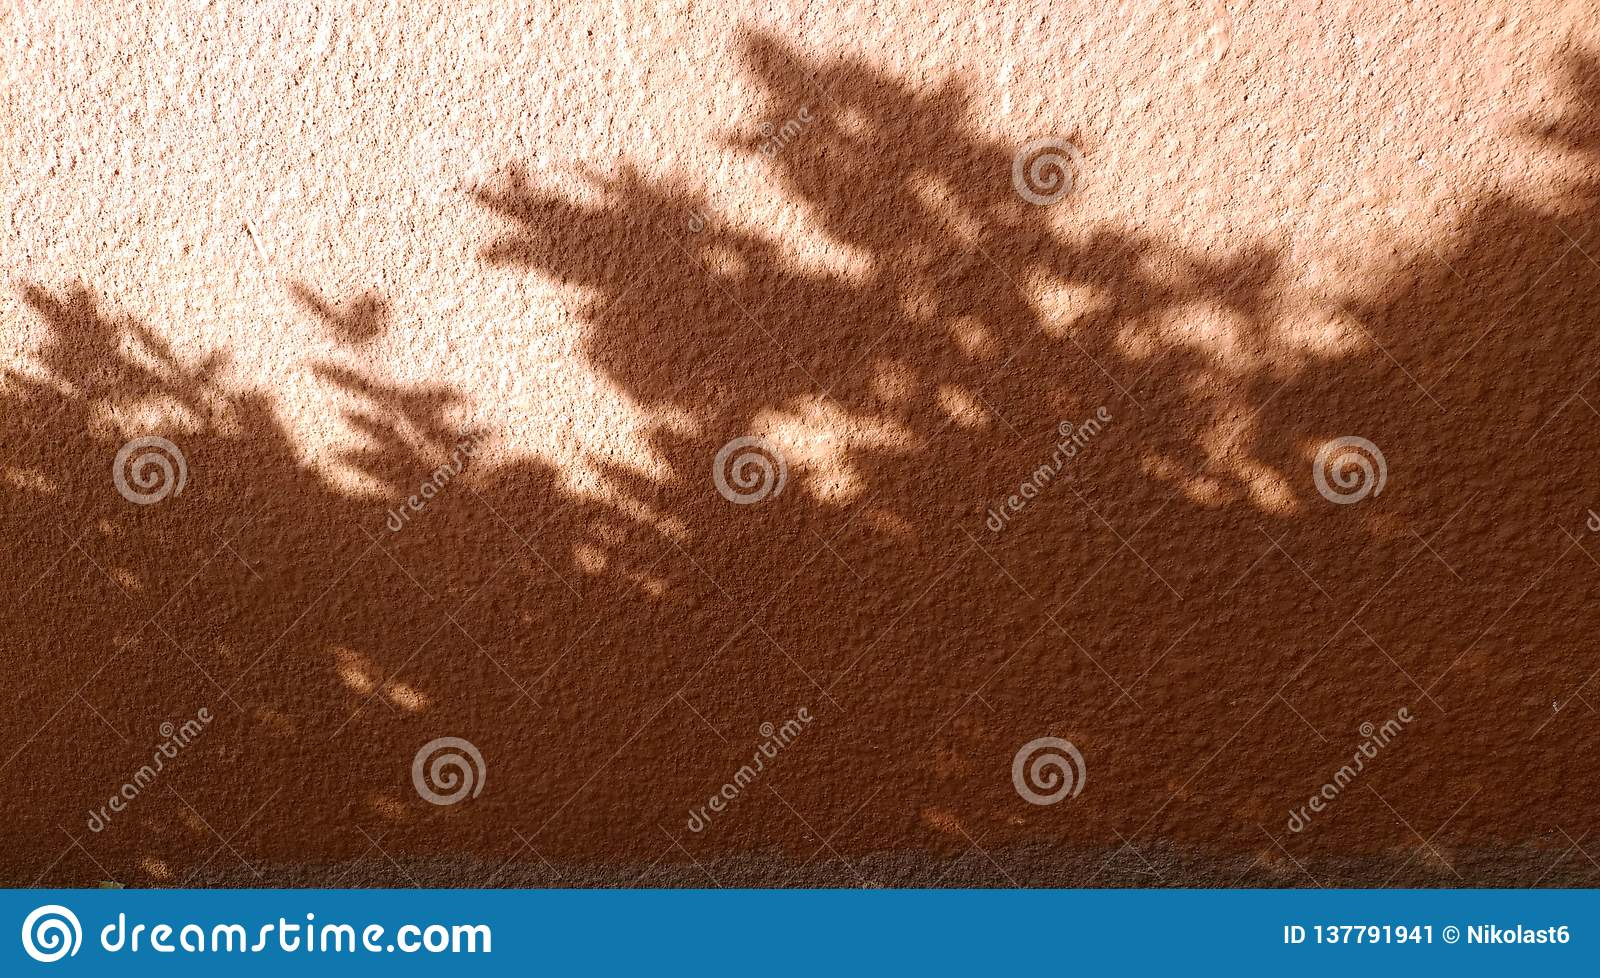 Interesting abstract background with shadow from leaves and window lattice on the wall.